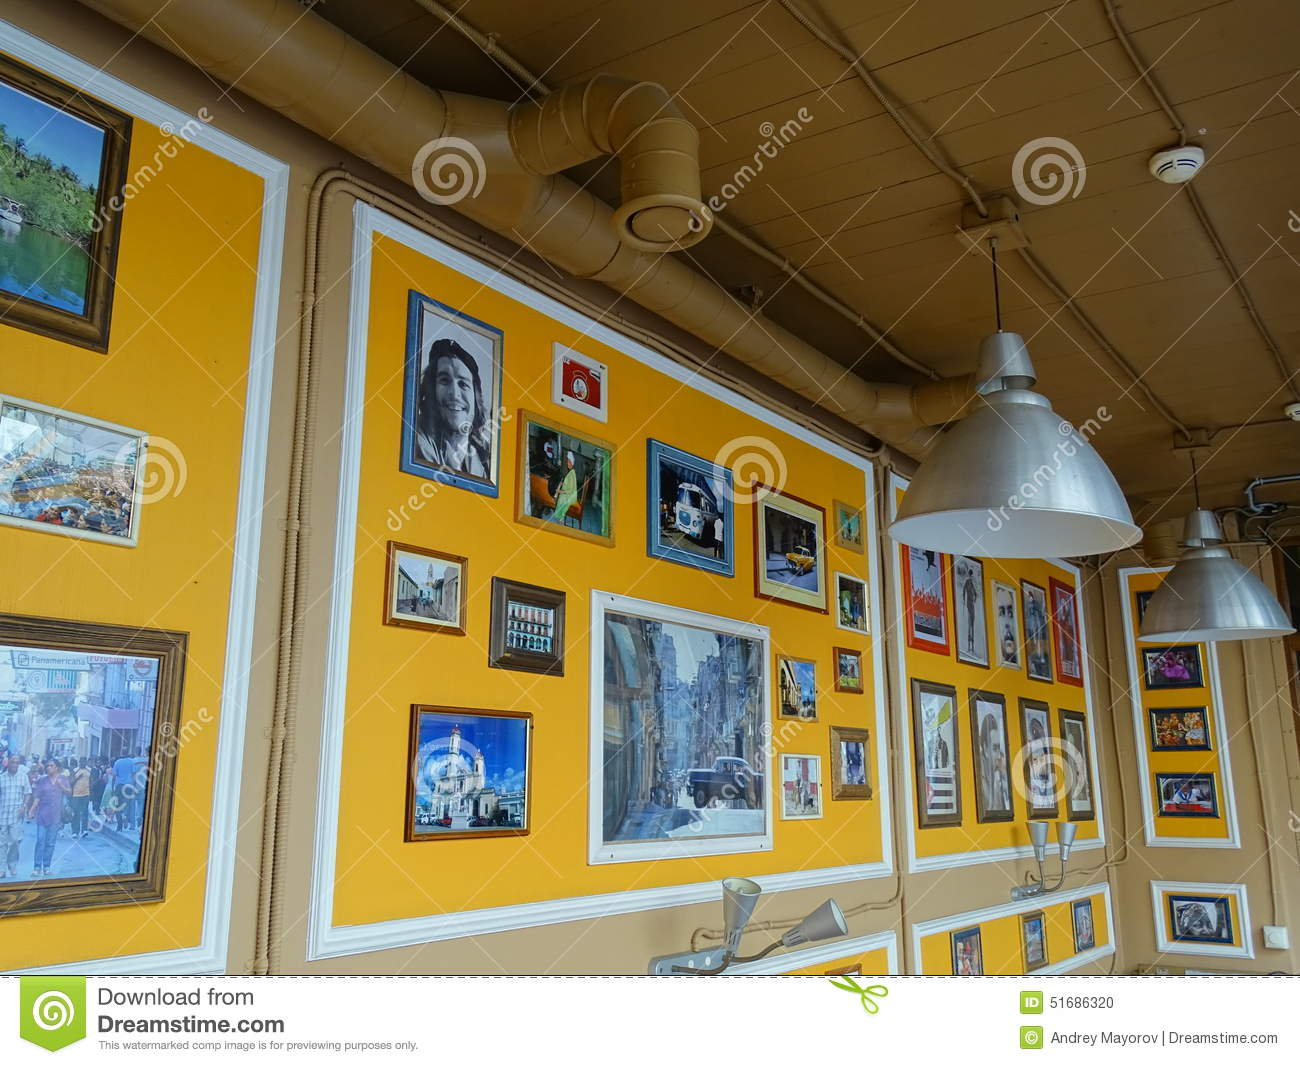 Interior design cafe in cuban style editorial image image 51686320 - Yellow interior house design photos ...